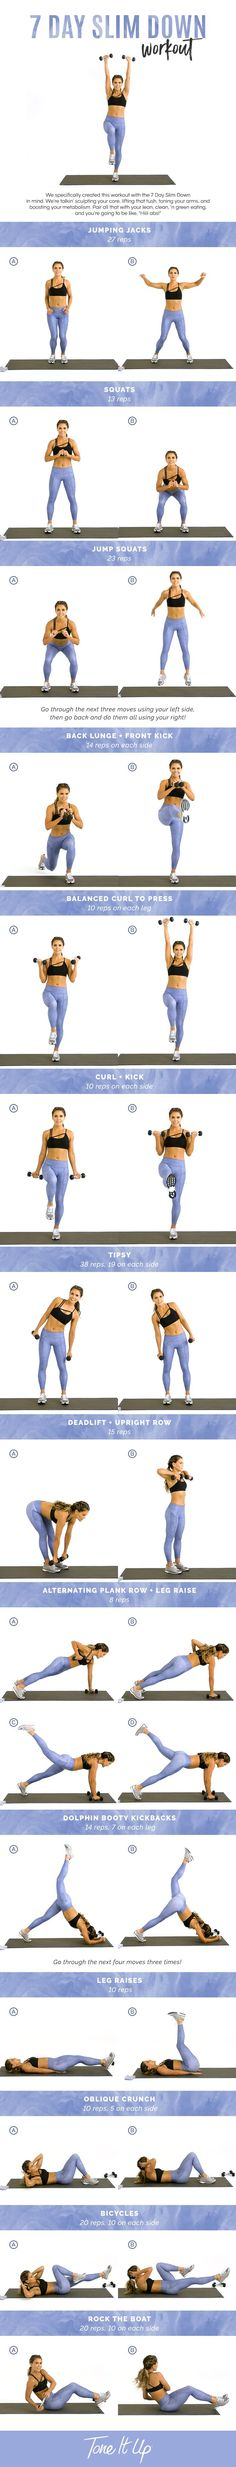 Tone It Up 7 Day Slim Down Workout!  Follow Personal Trainer at Pinterest.com/SuperDFitness Now!